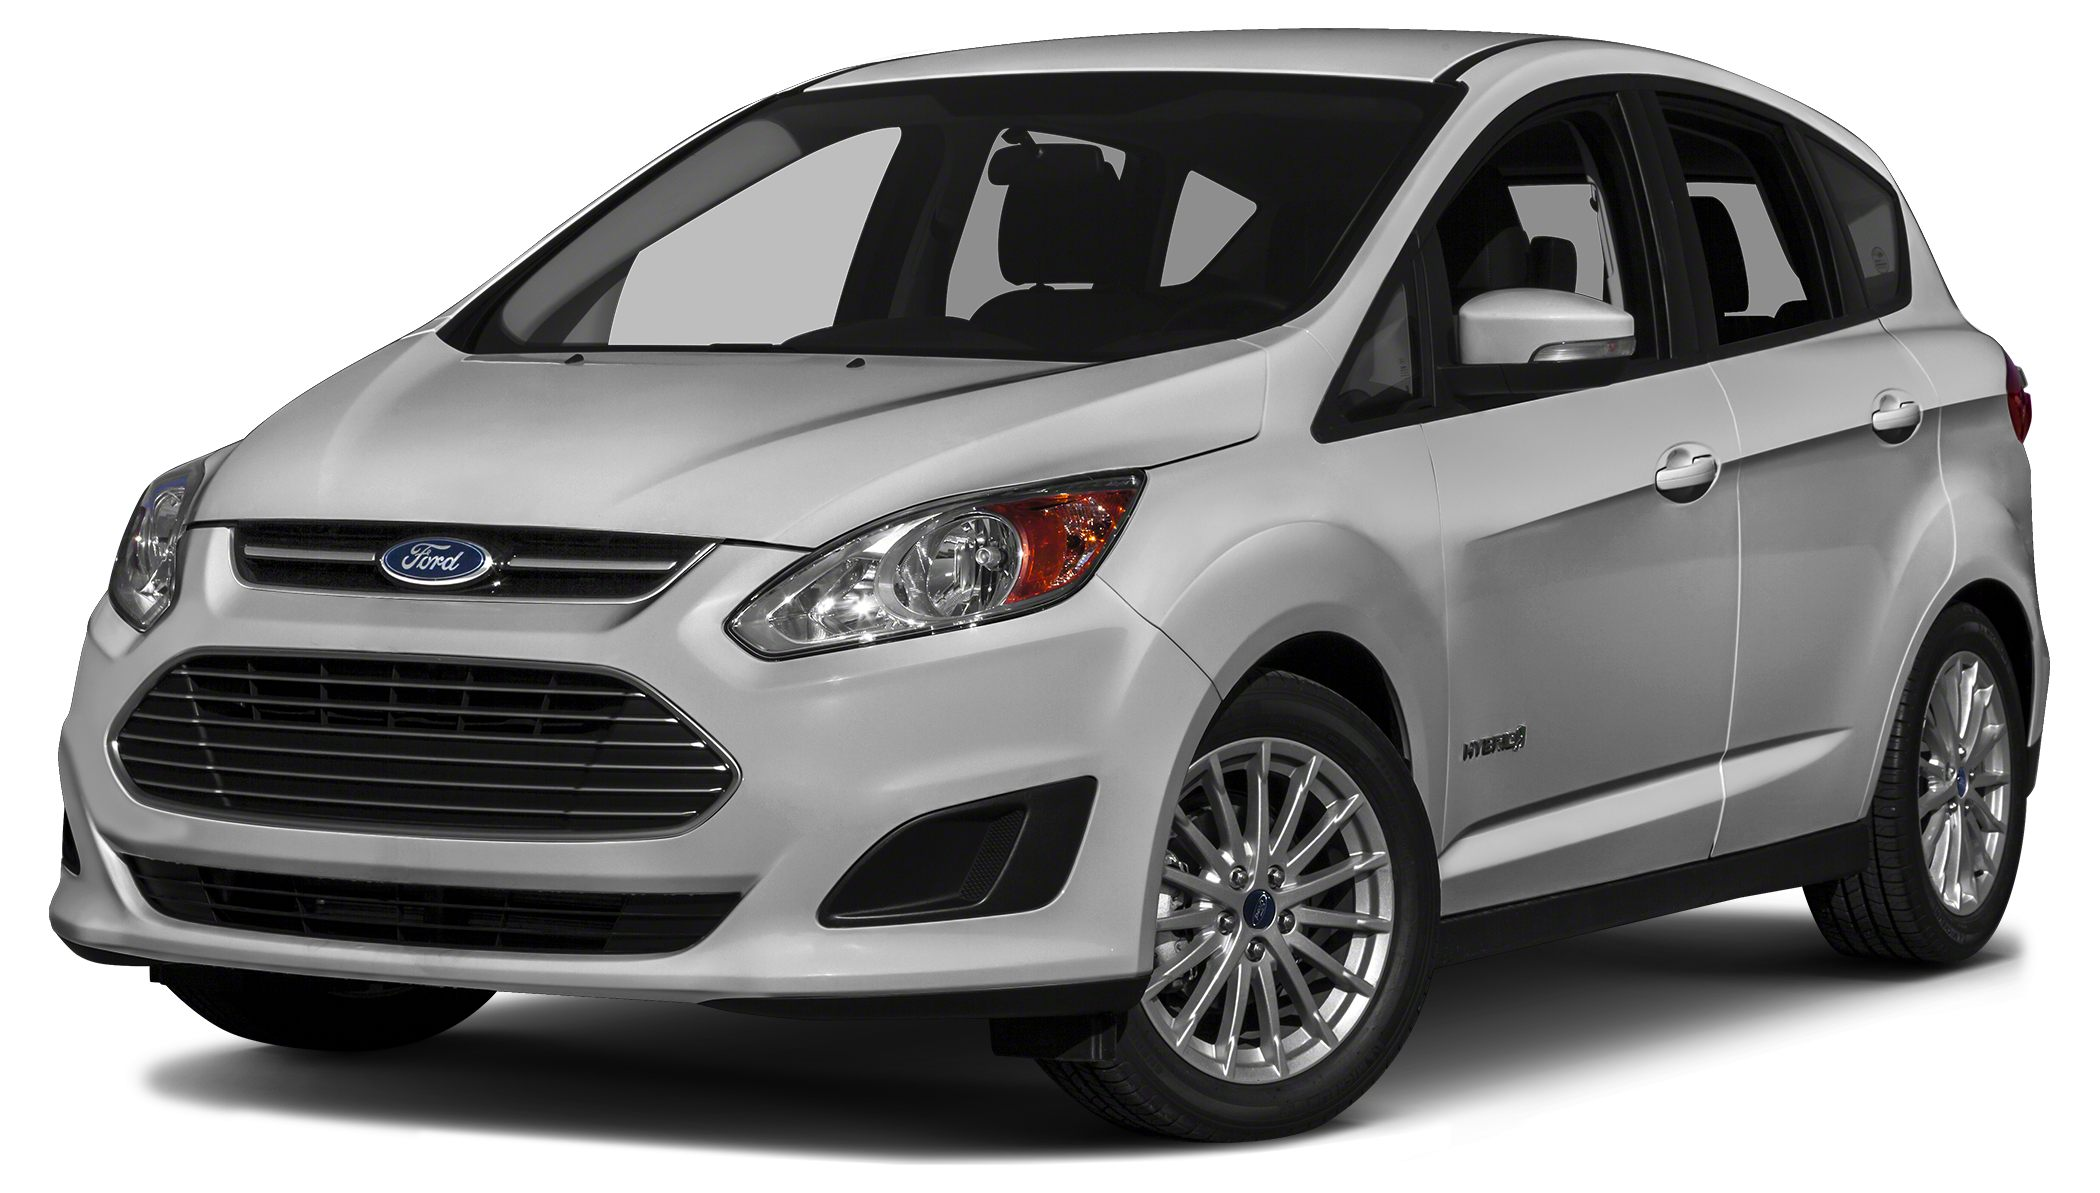 2016 Ford C-Max Hybrid SE The C-MAX Hybrid and C-MAX Energi plug-in hybrid - the all-new family of